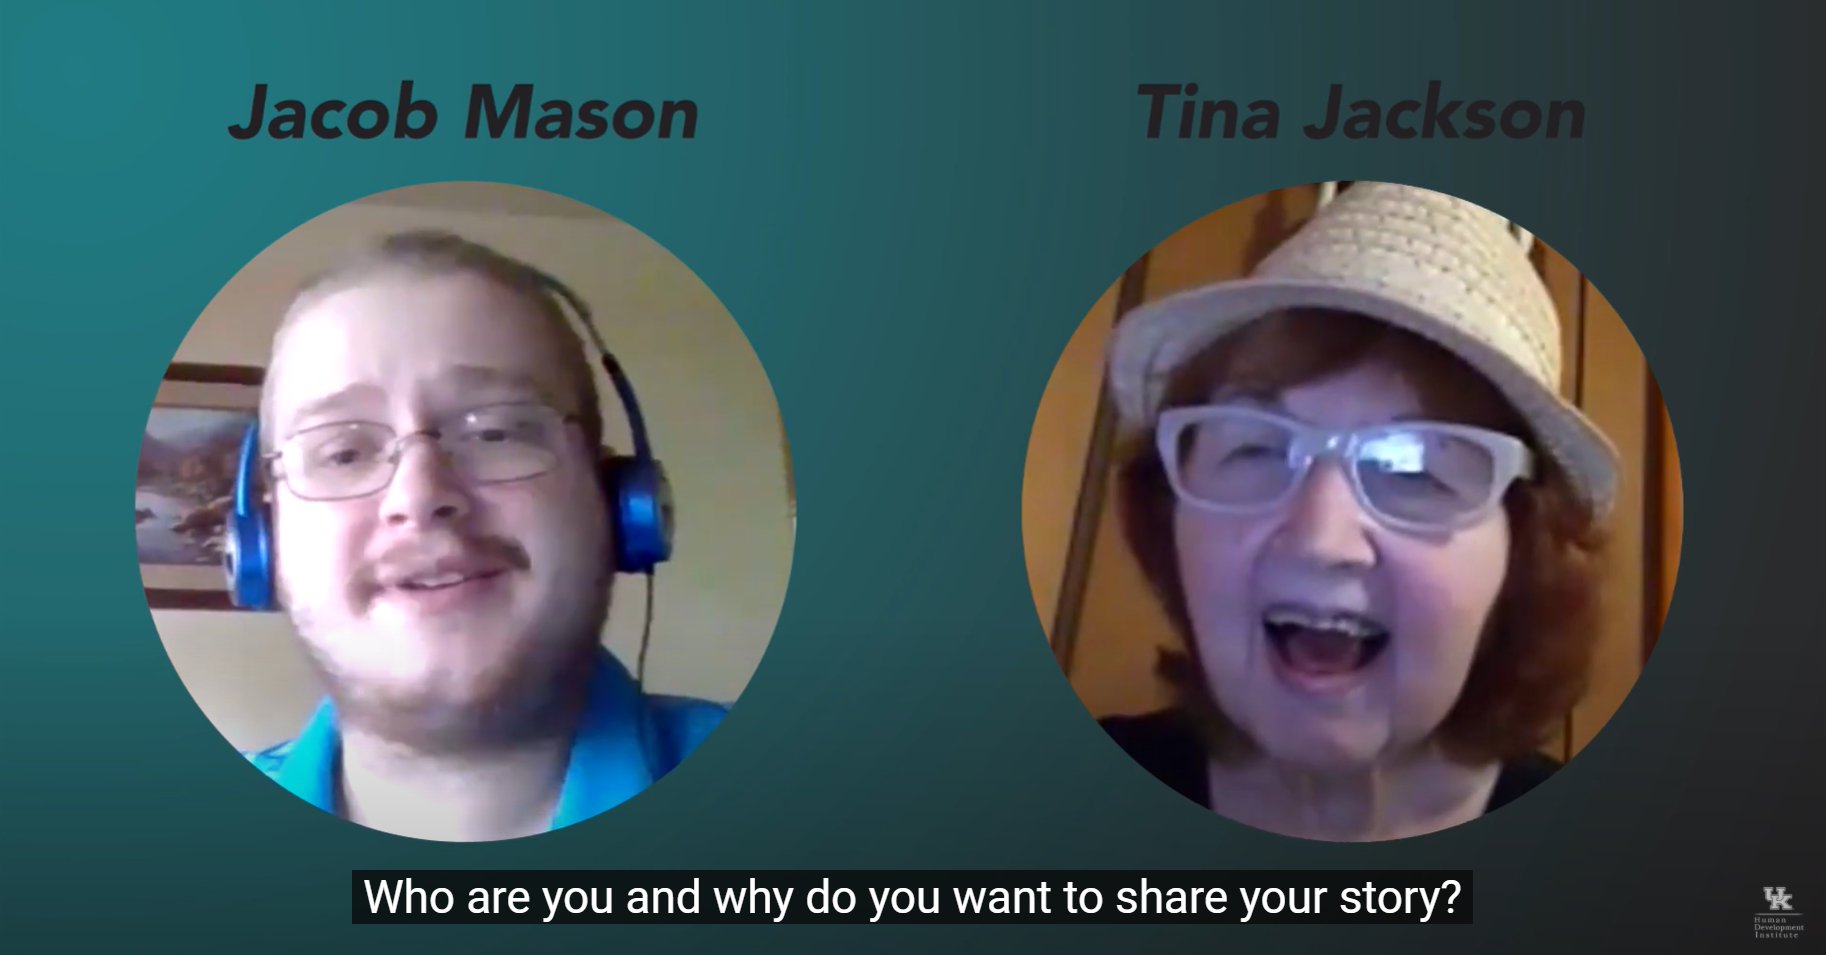 """Jacob Mason Tina Jackson Story video still with Jacob and Tina during the interview with the caption: """"Who are you and why do you want to share your story?"""""""